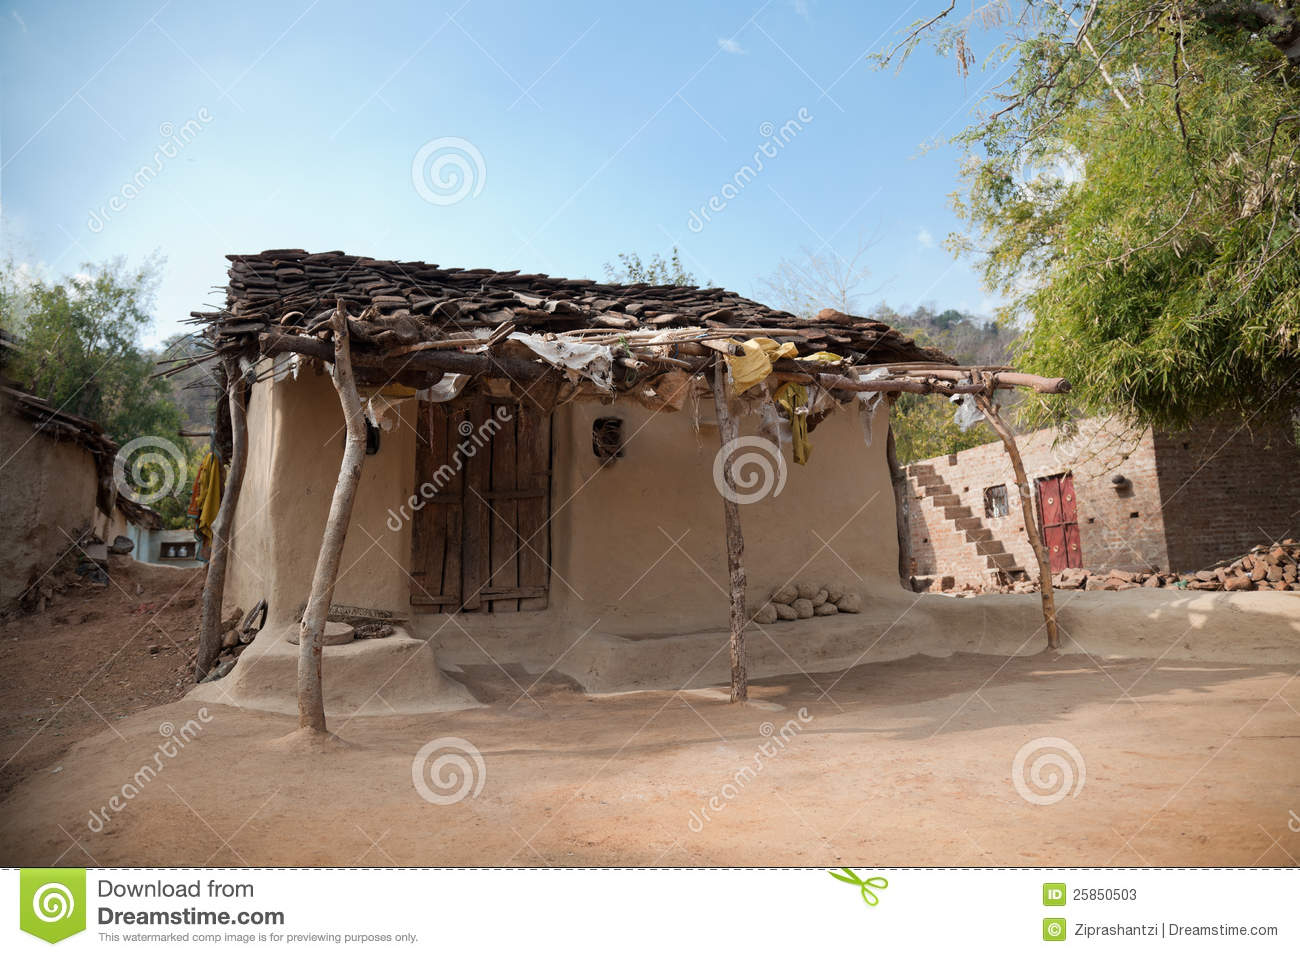 Damaged old house in village of india made of soil.